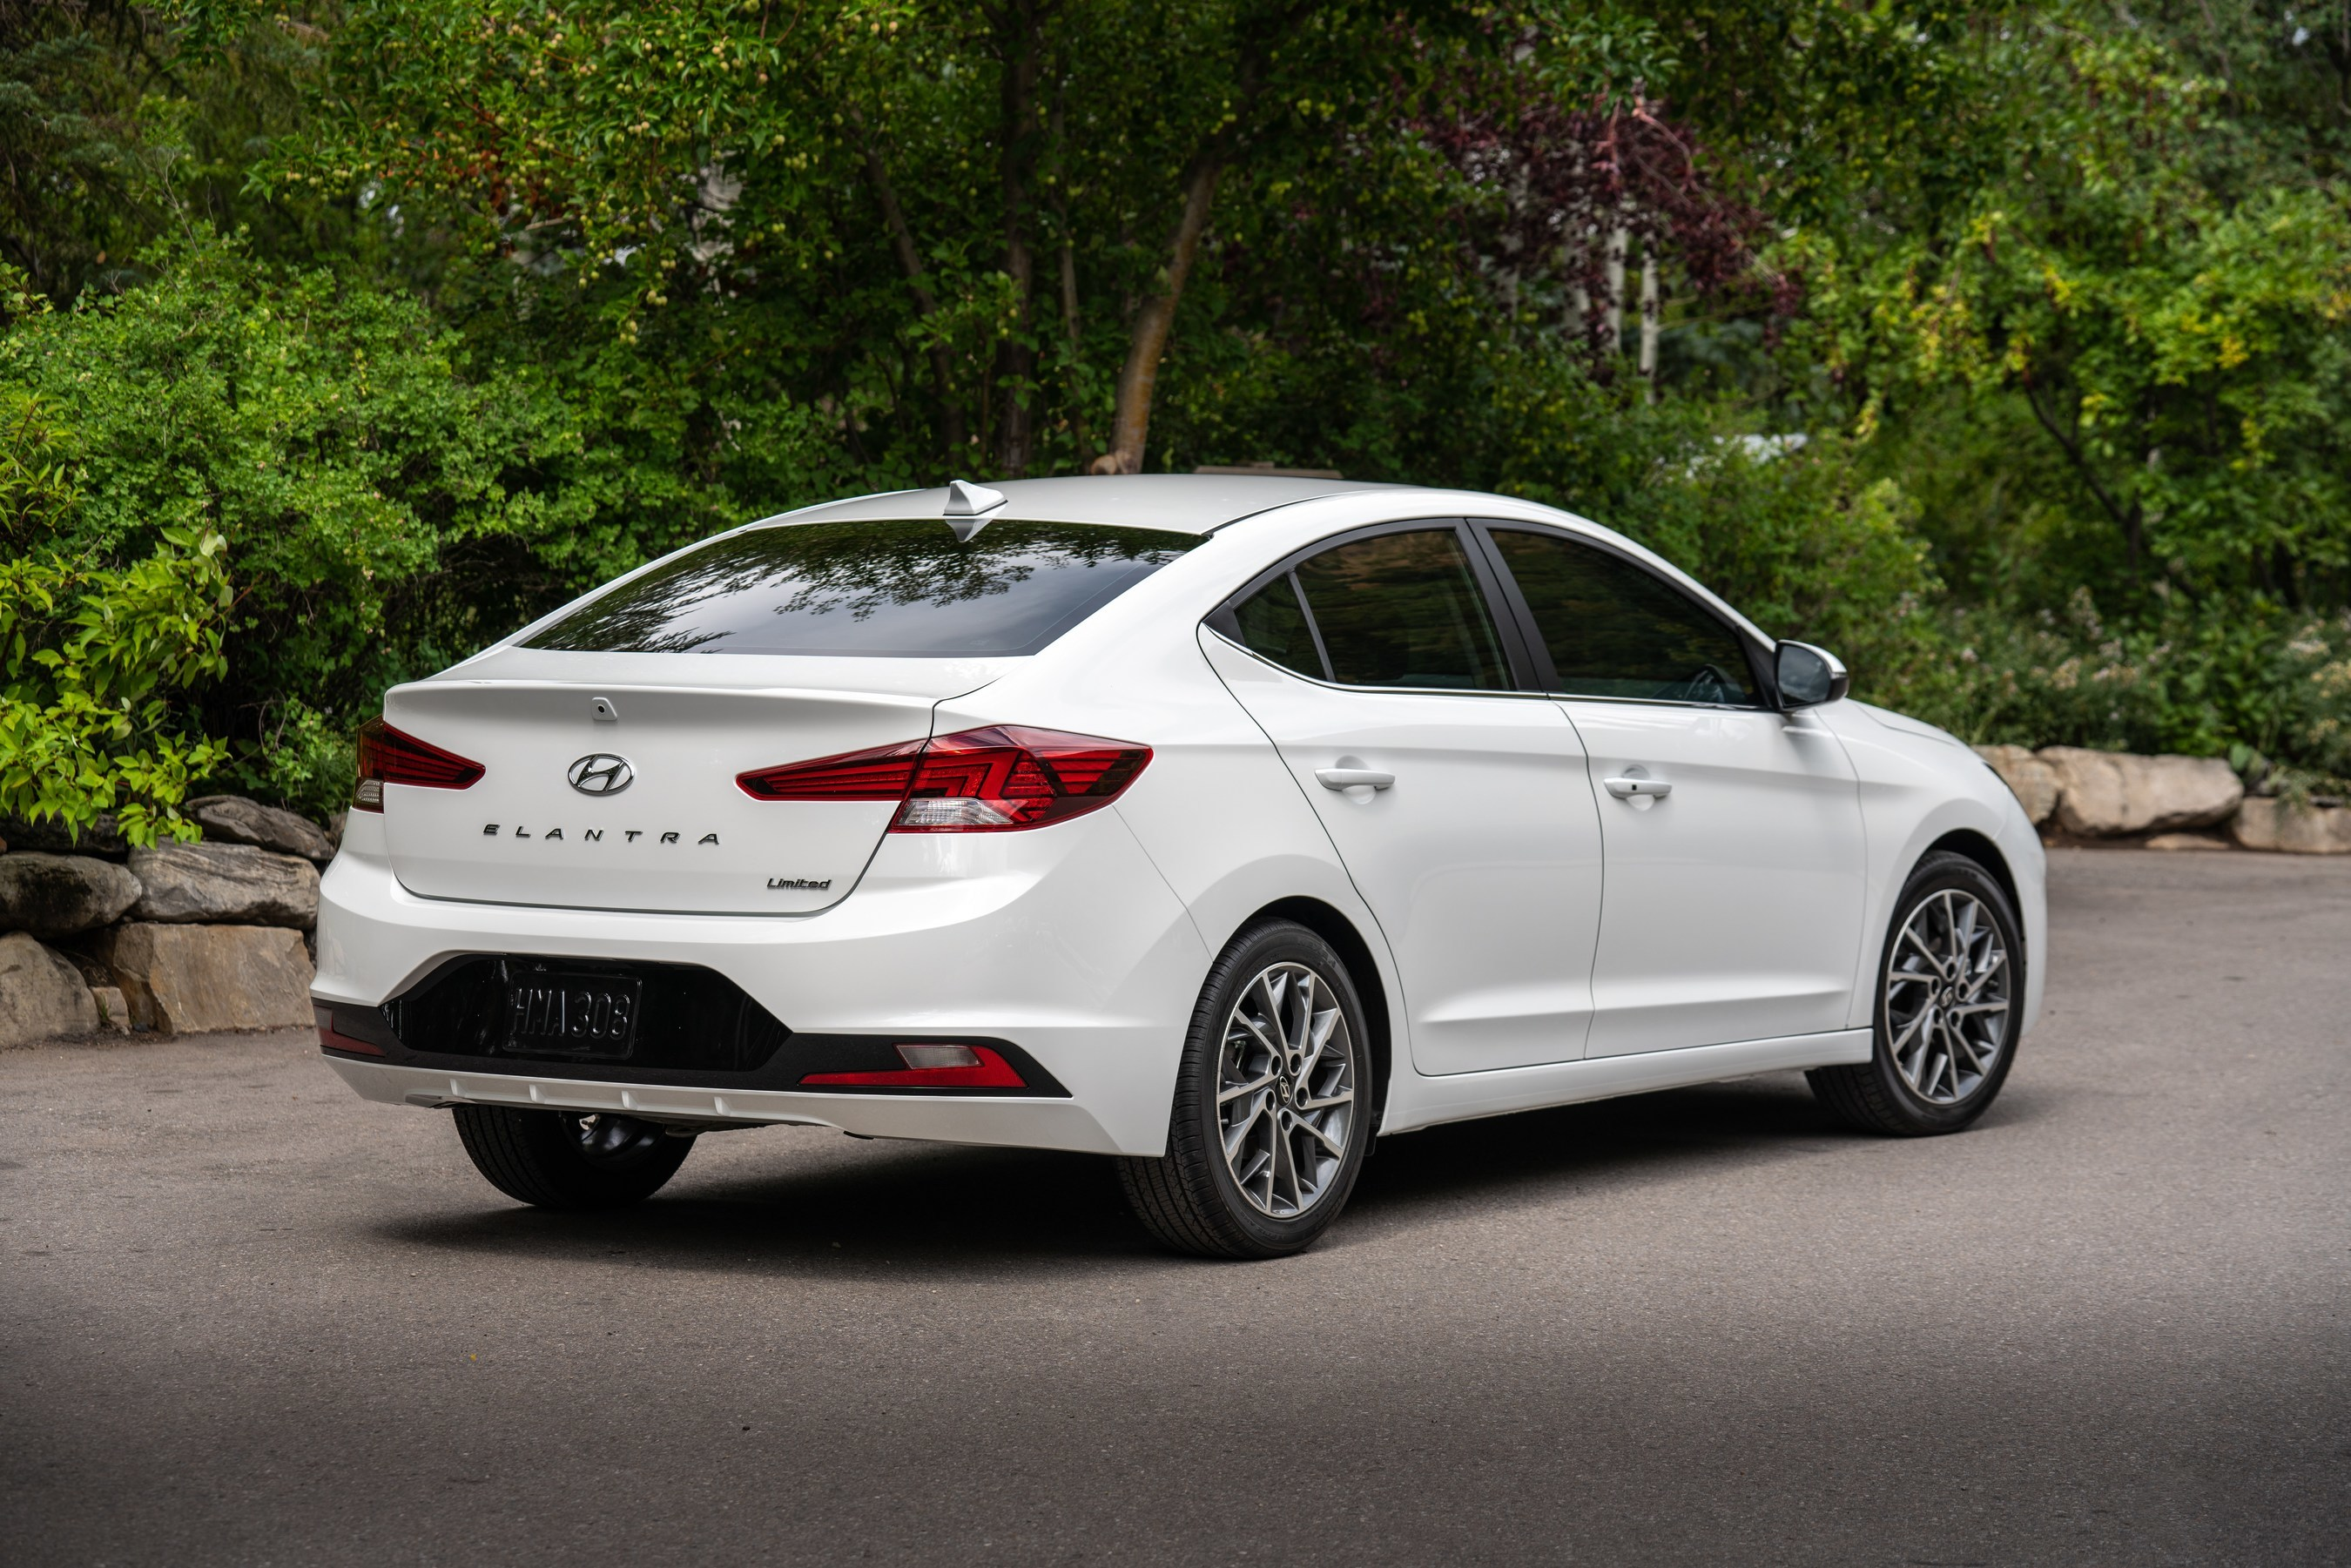 2020 Hyundai Elantra Improves Fuel Economy and Safety